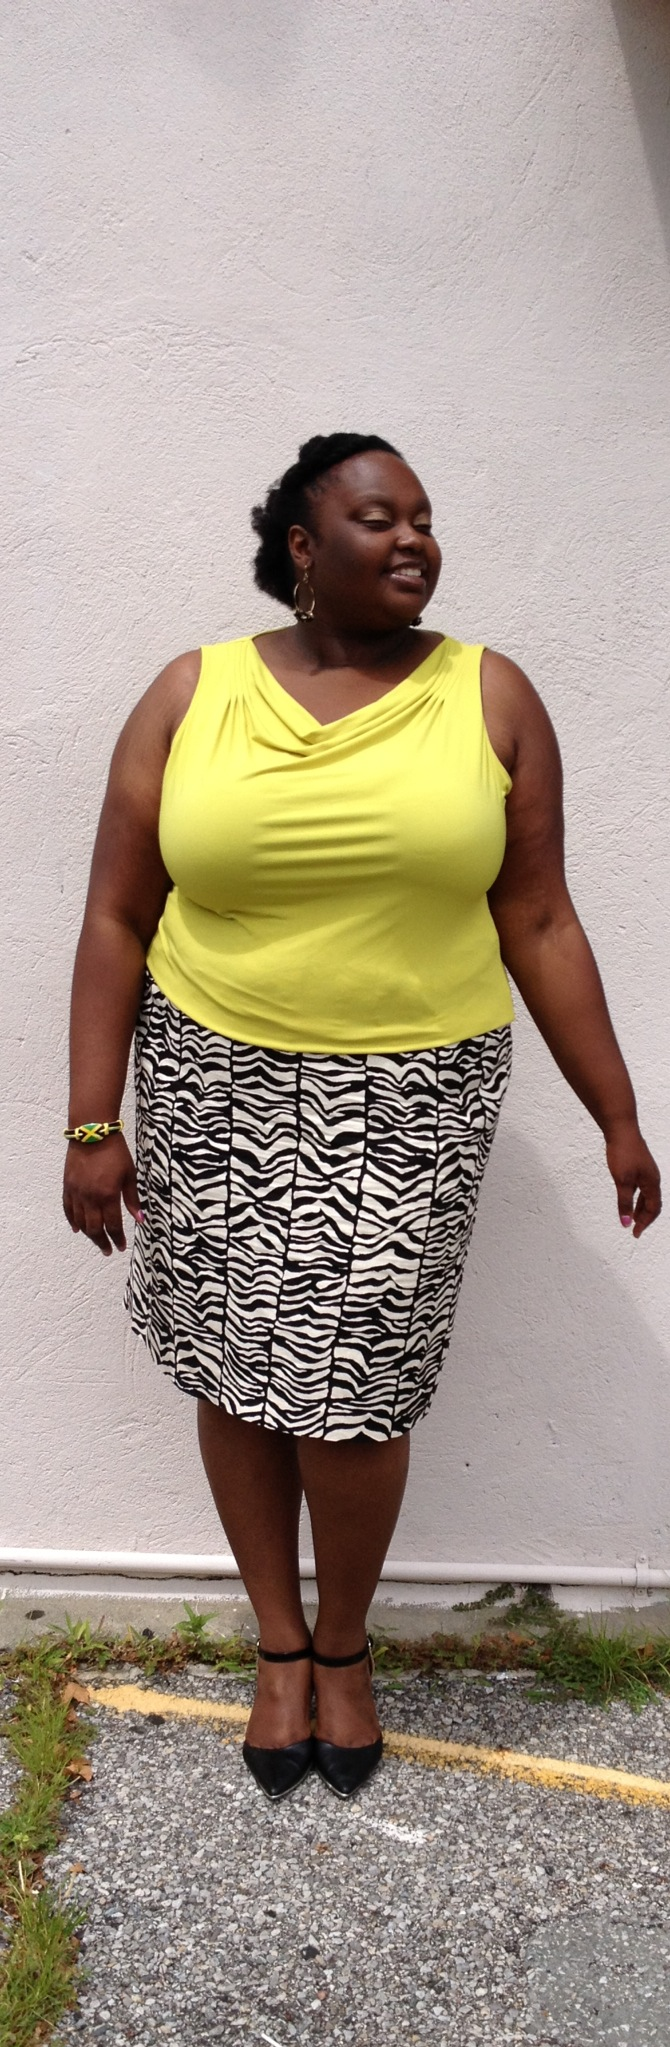 Curvy Woman Style Crystal H in Green and Zebra 2.jpg